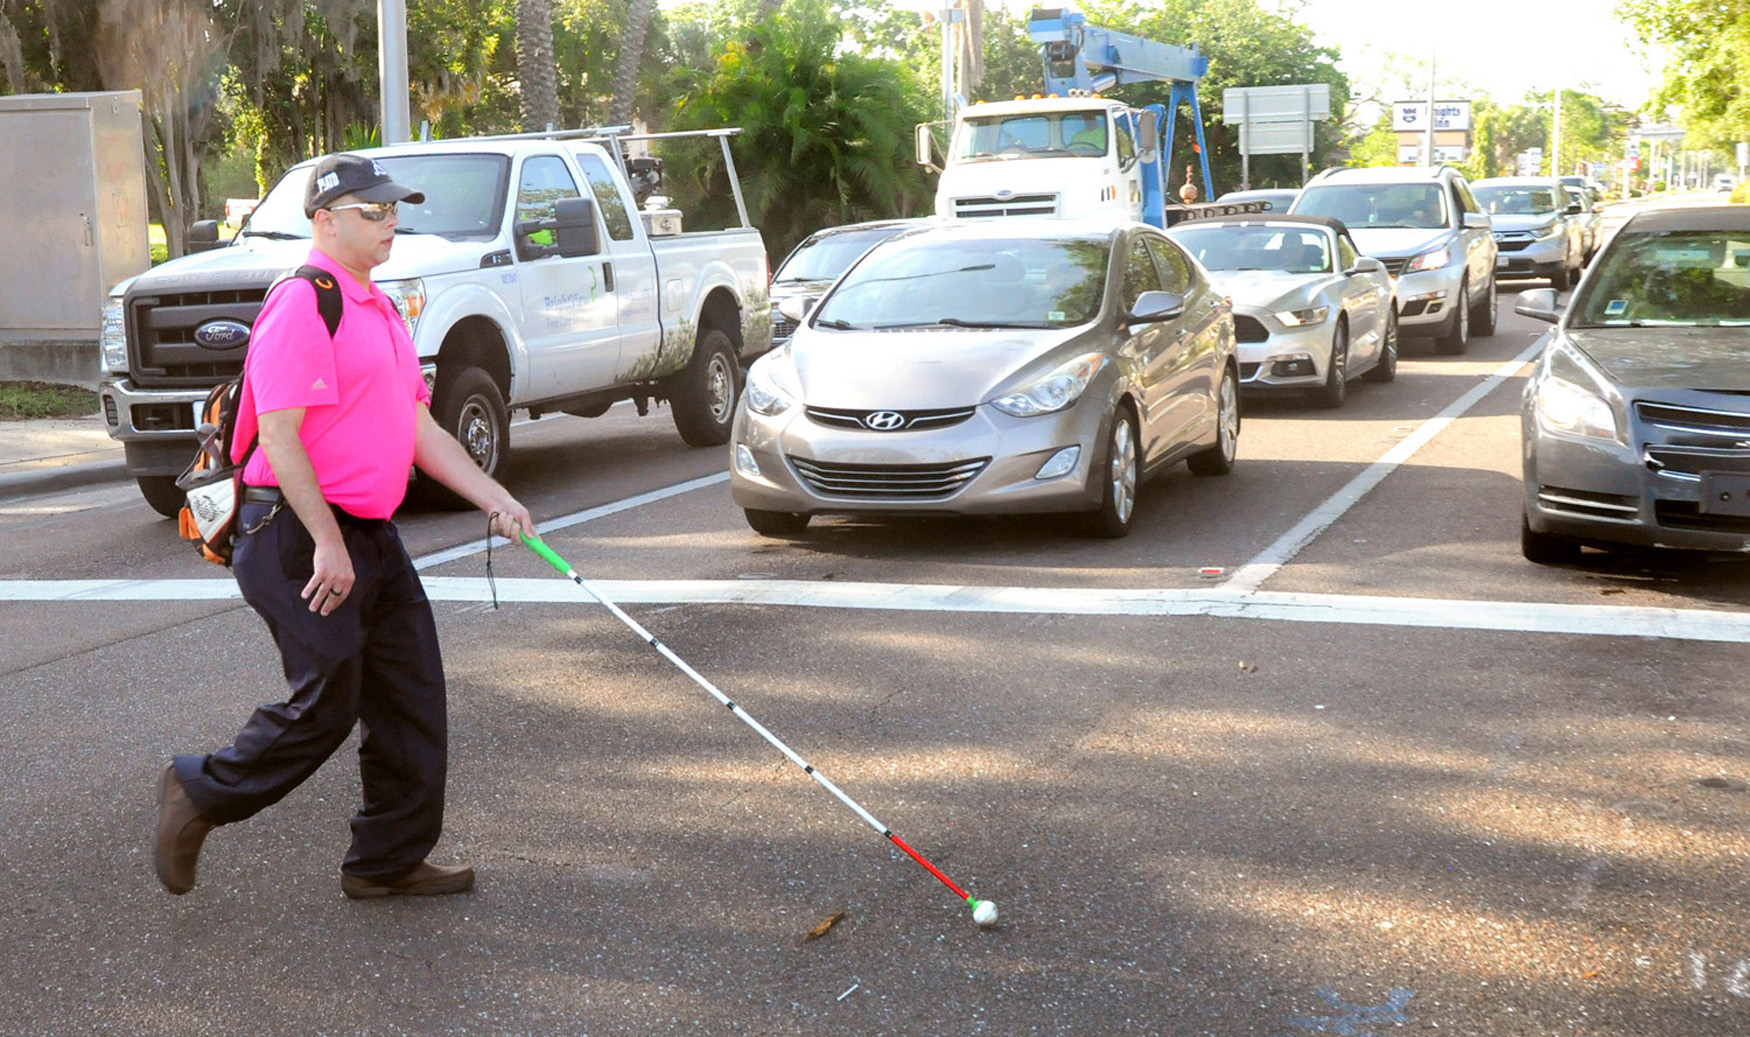 October is White Cane Safety Awareness Month worldwide, a reminder to watch for blind or disabled pedestrians.